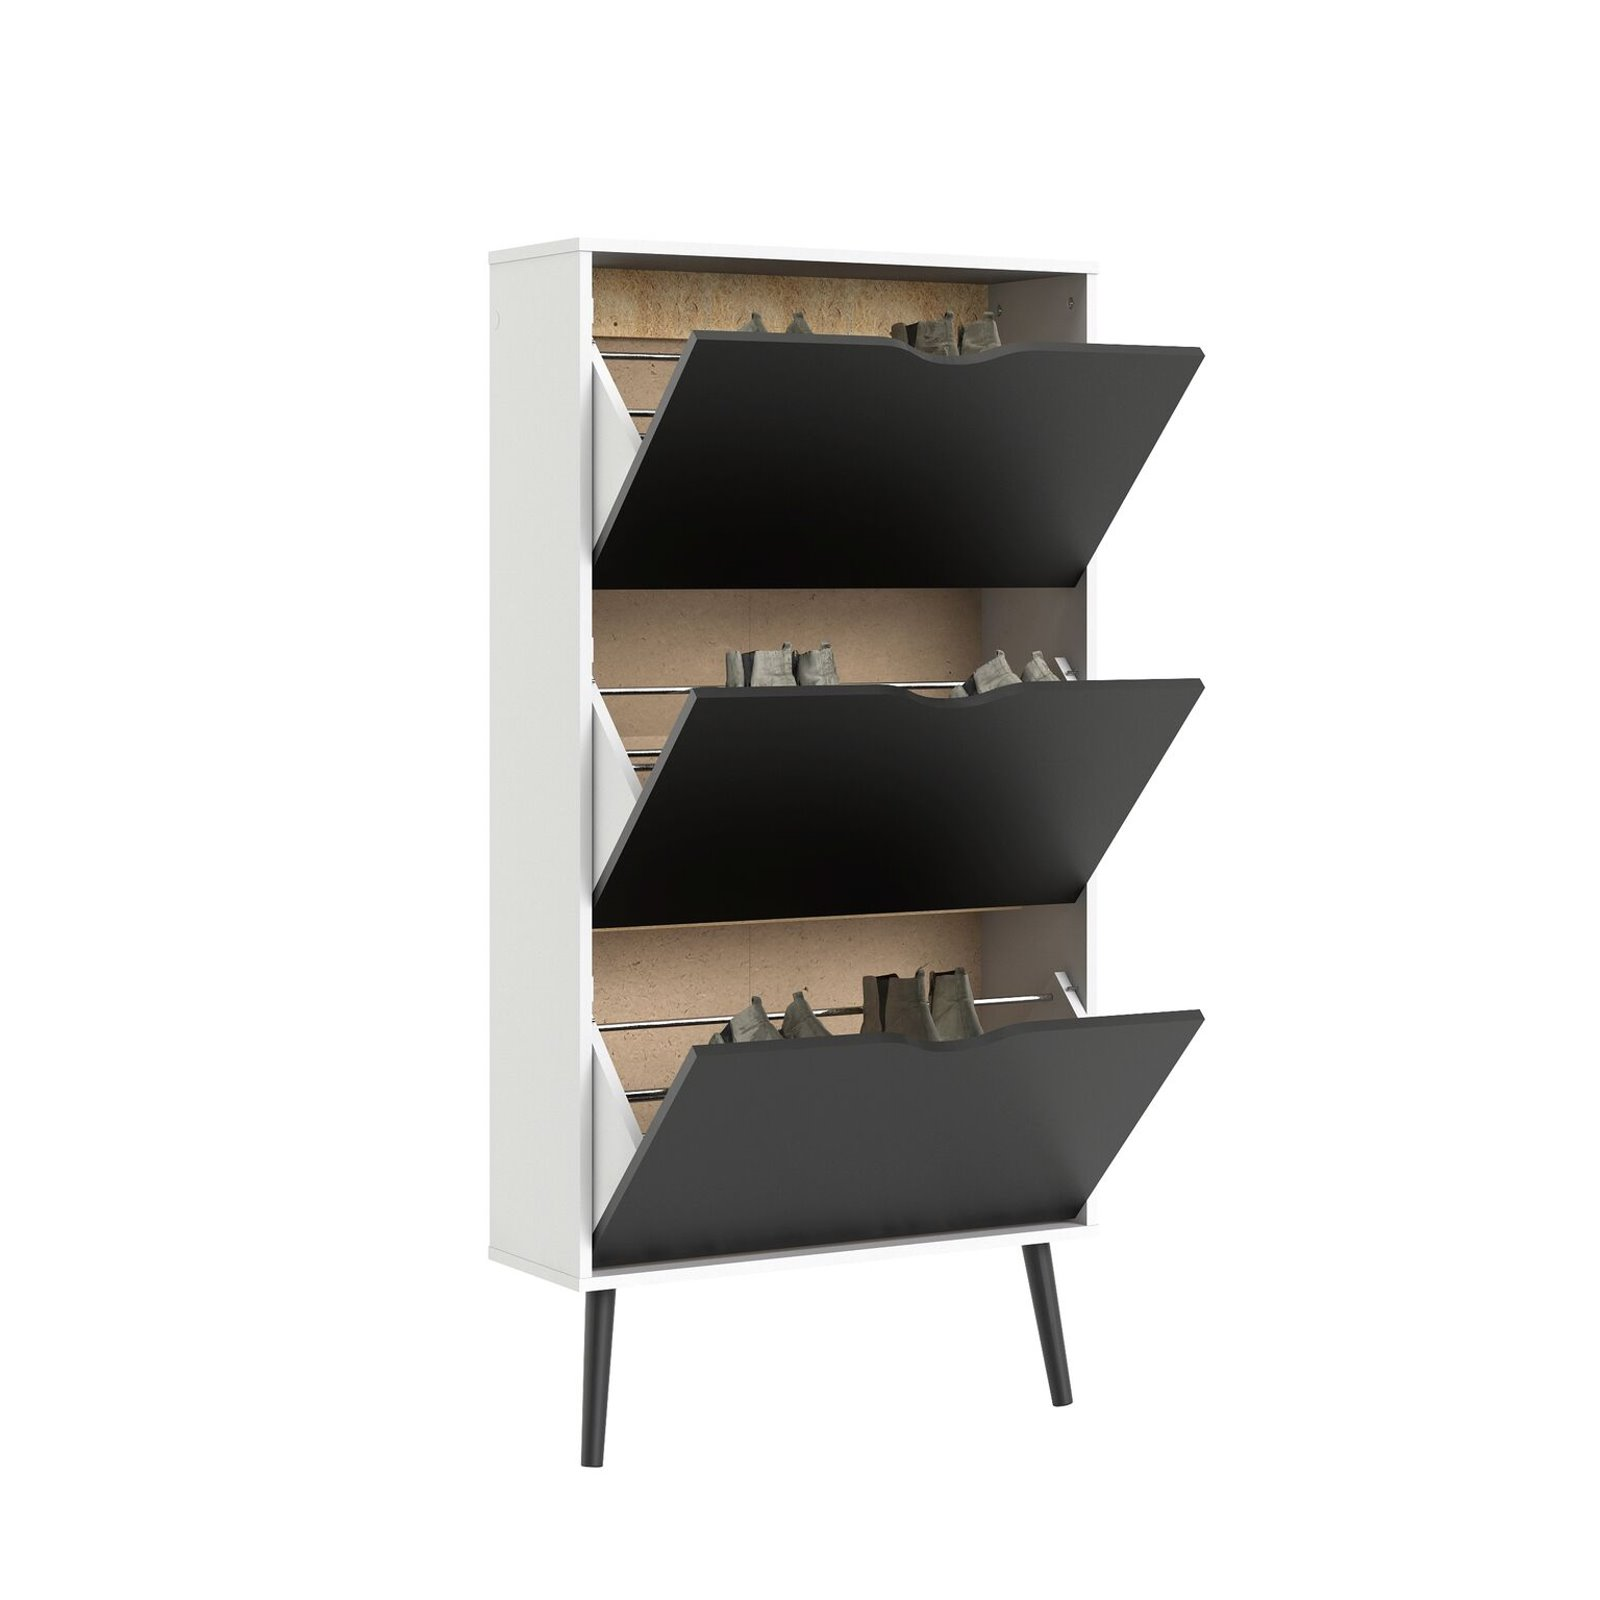 schuhschrank napoli schuhkipper schuhregal flur dielen schrank schwarz wei m bel wohnen flur. Black Bedroom Furniture Sets. Home Design Ideas